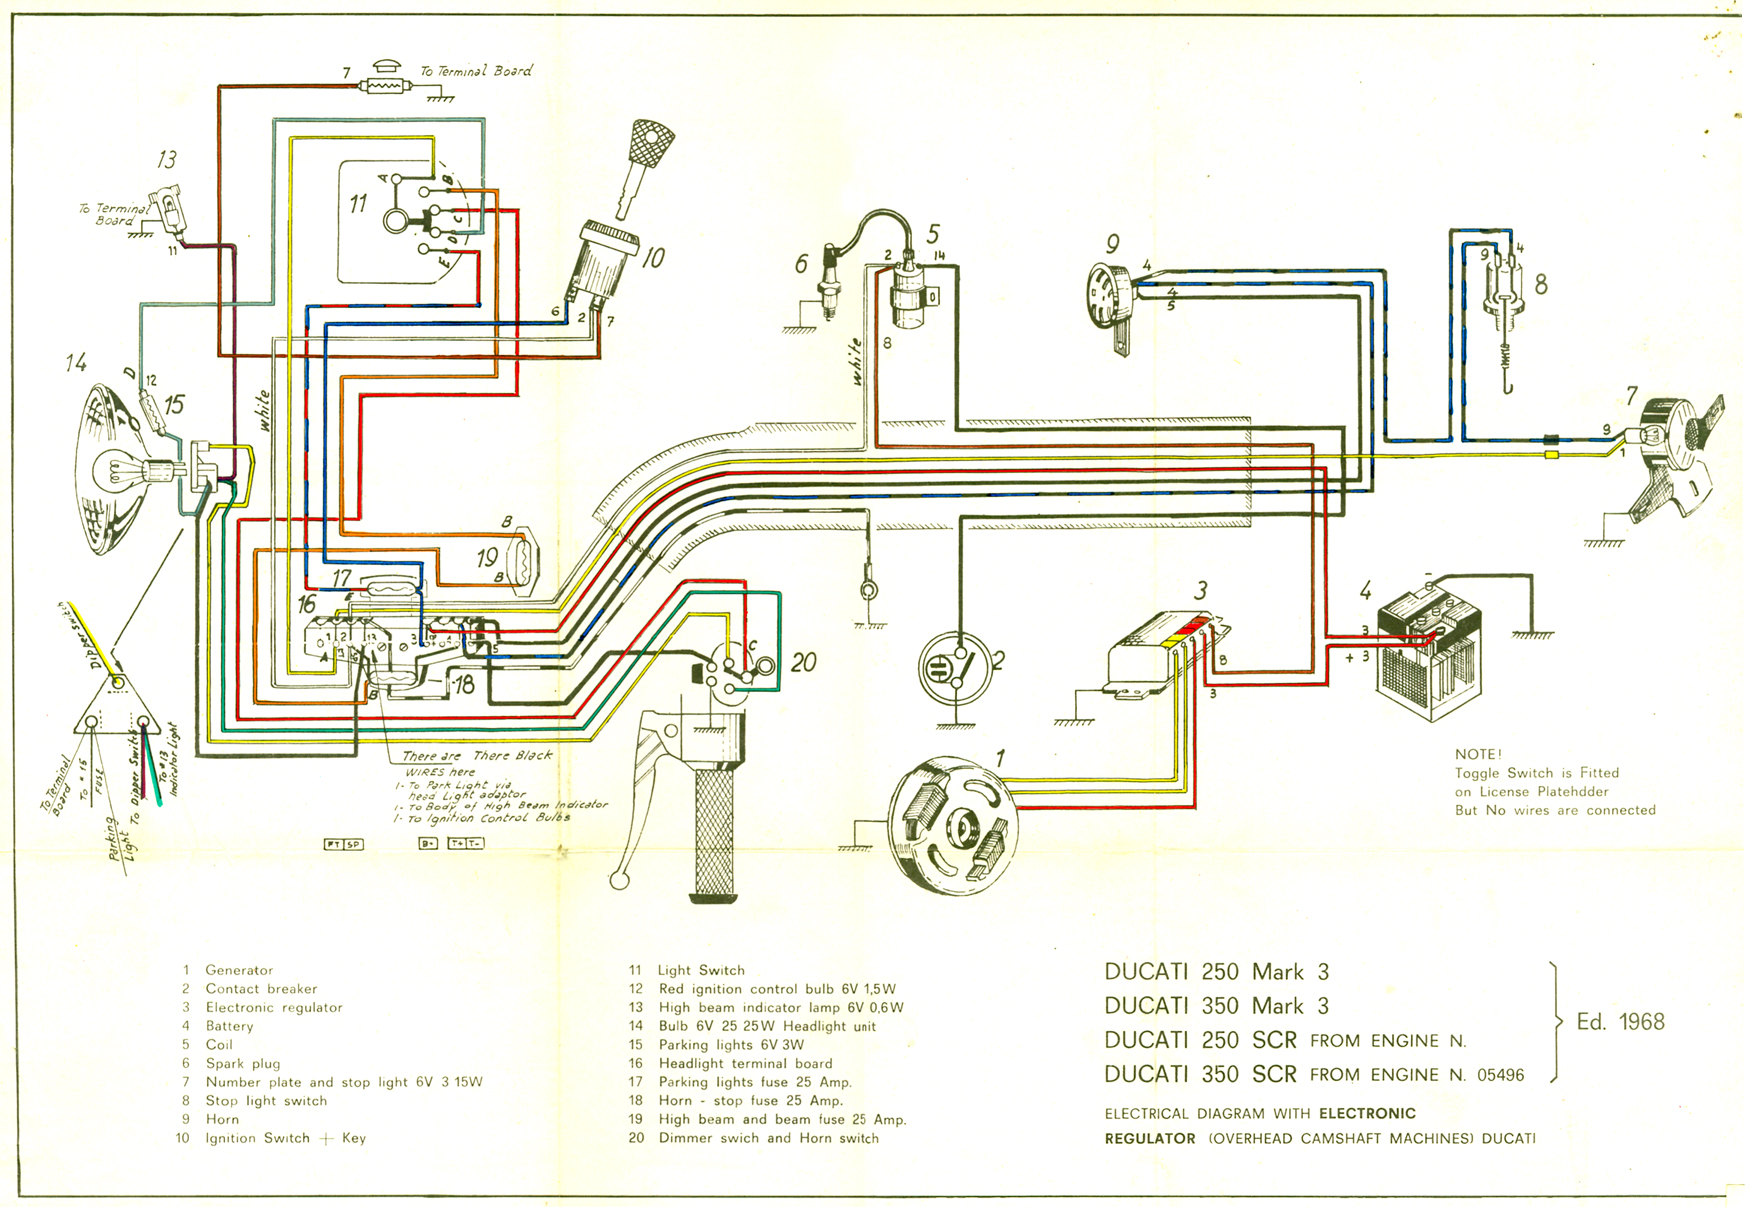 wiring_diagram wiring diagram needed ducati ms the ultimate ducati forum 49cc mini chopper wiring schematic at webbmarketing.co